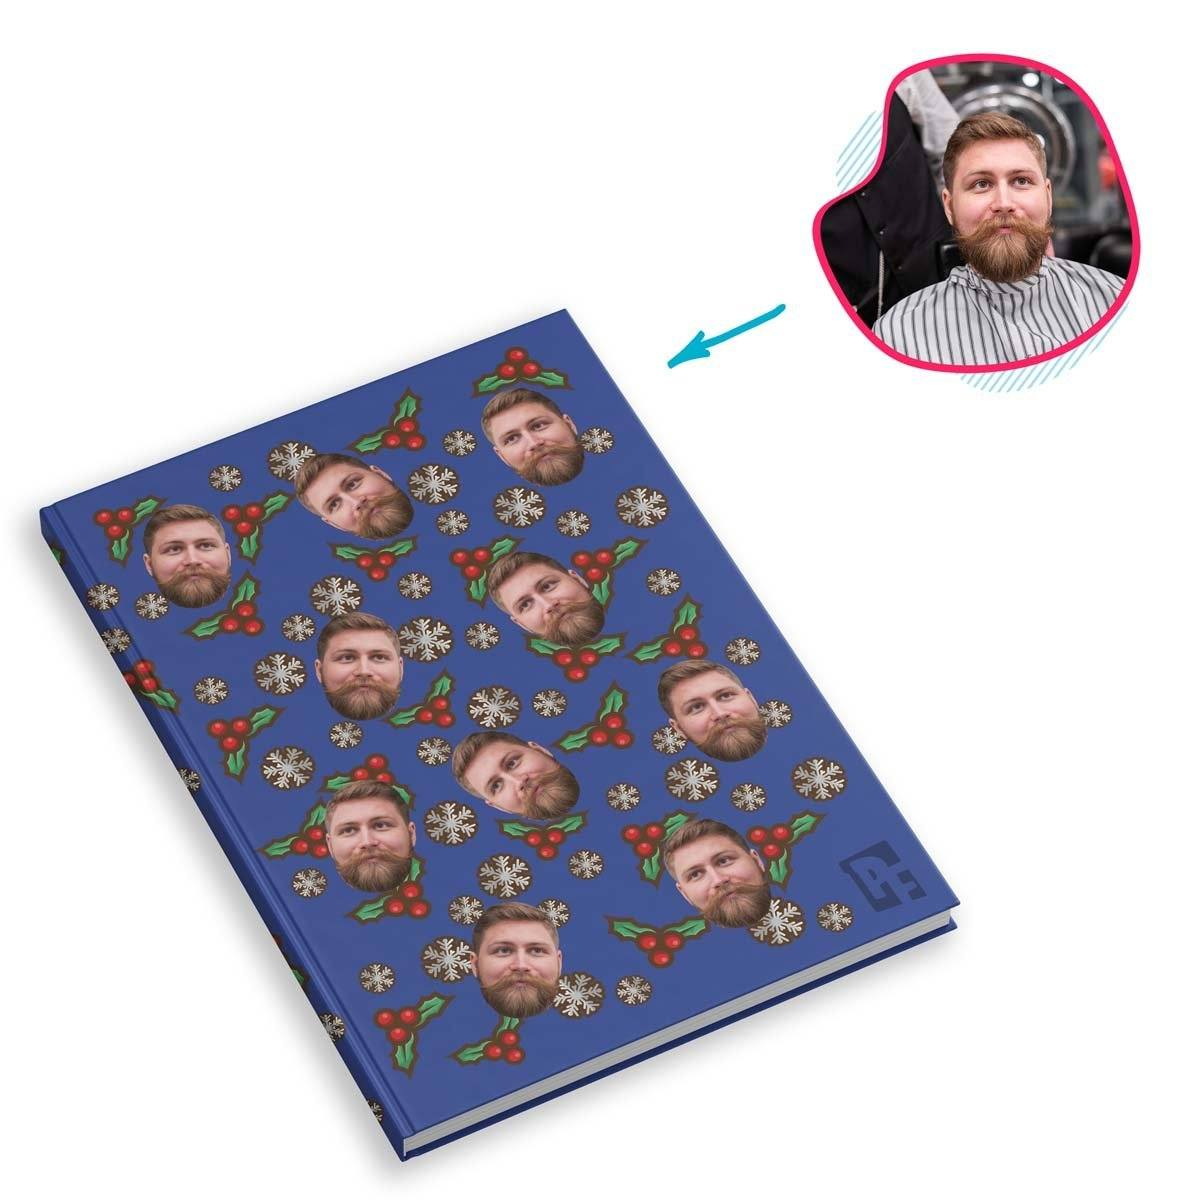 darkblue Mistletoe Notebook personalized with photo of face printed on them